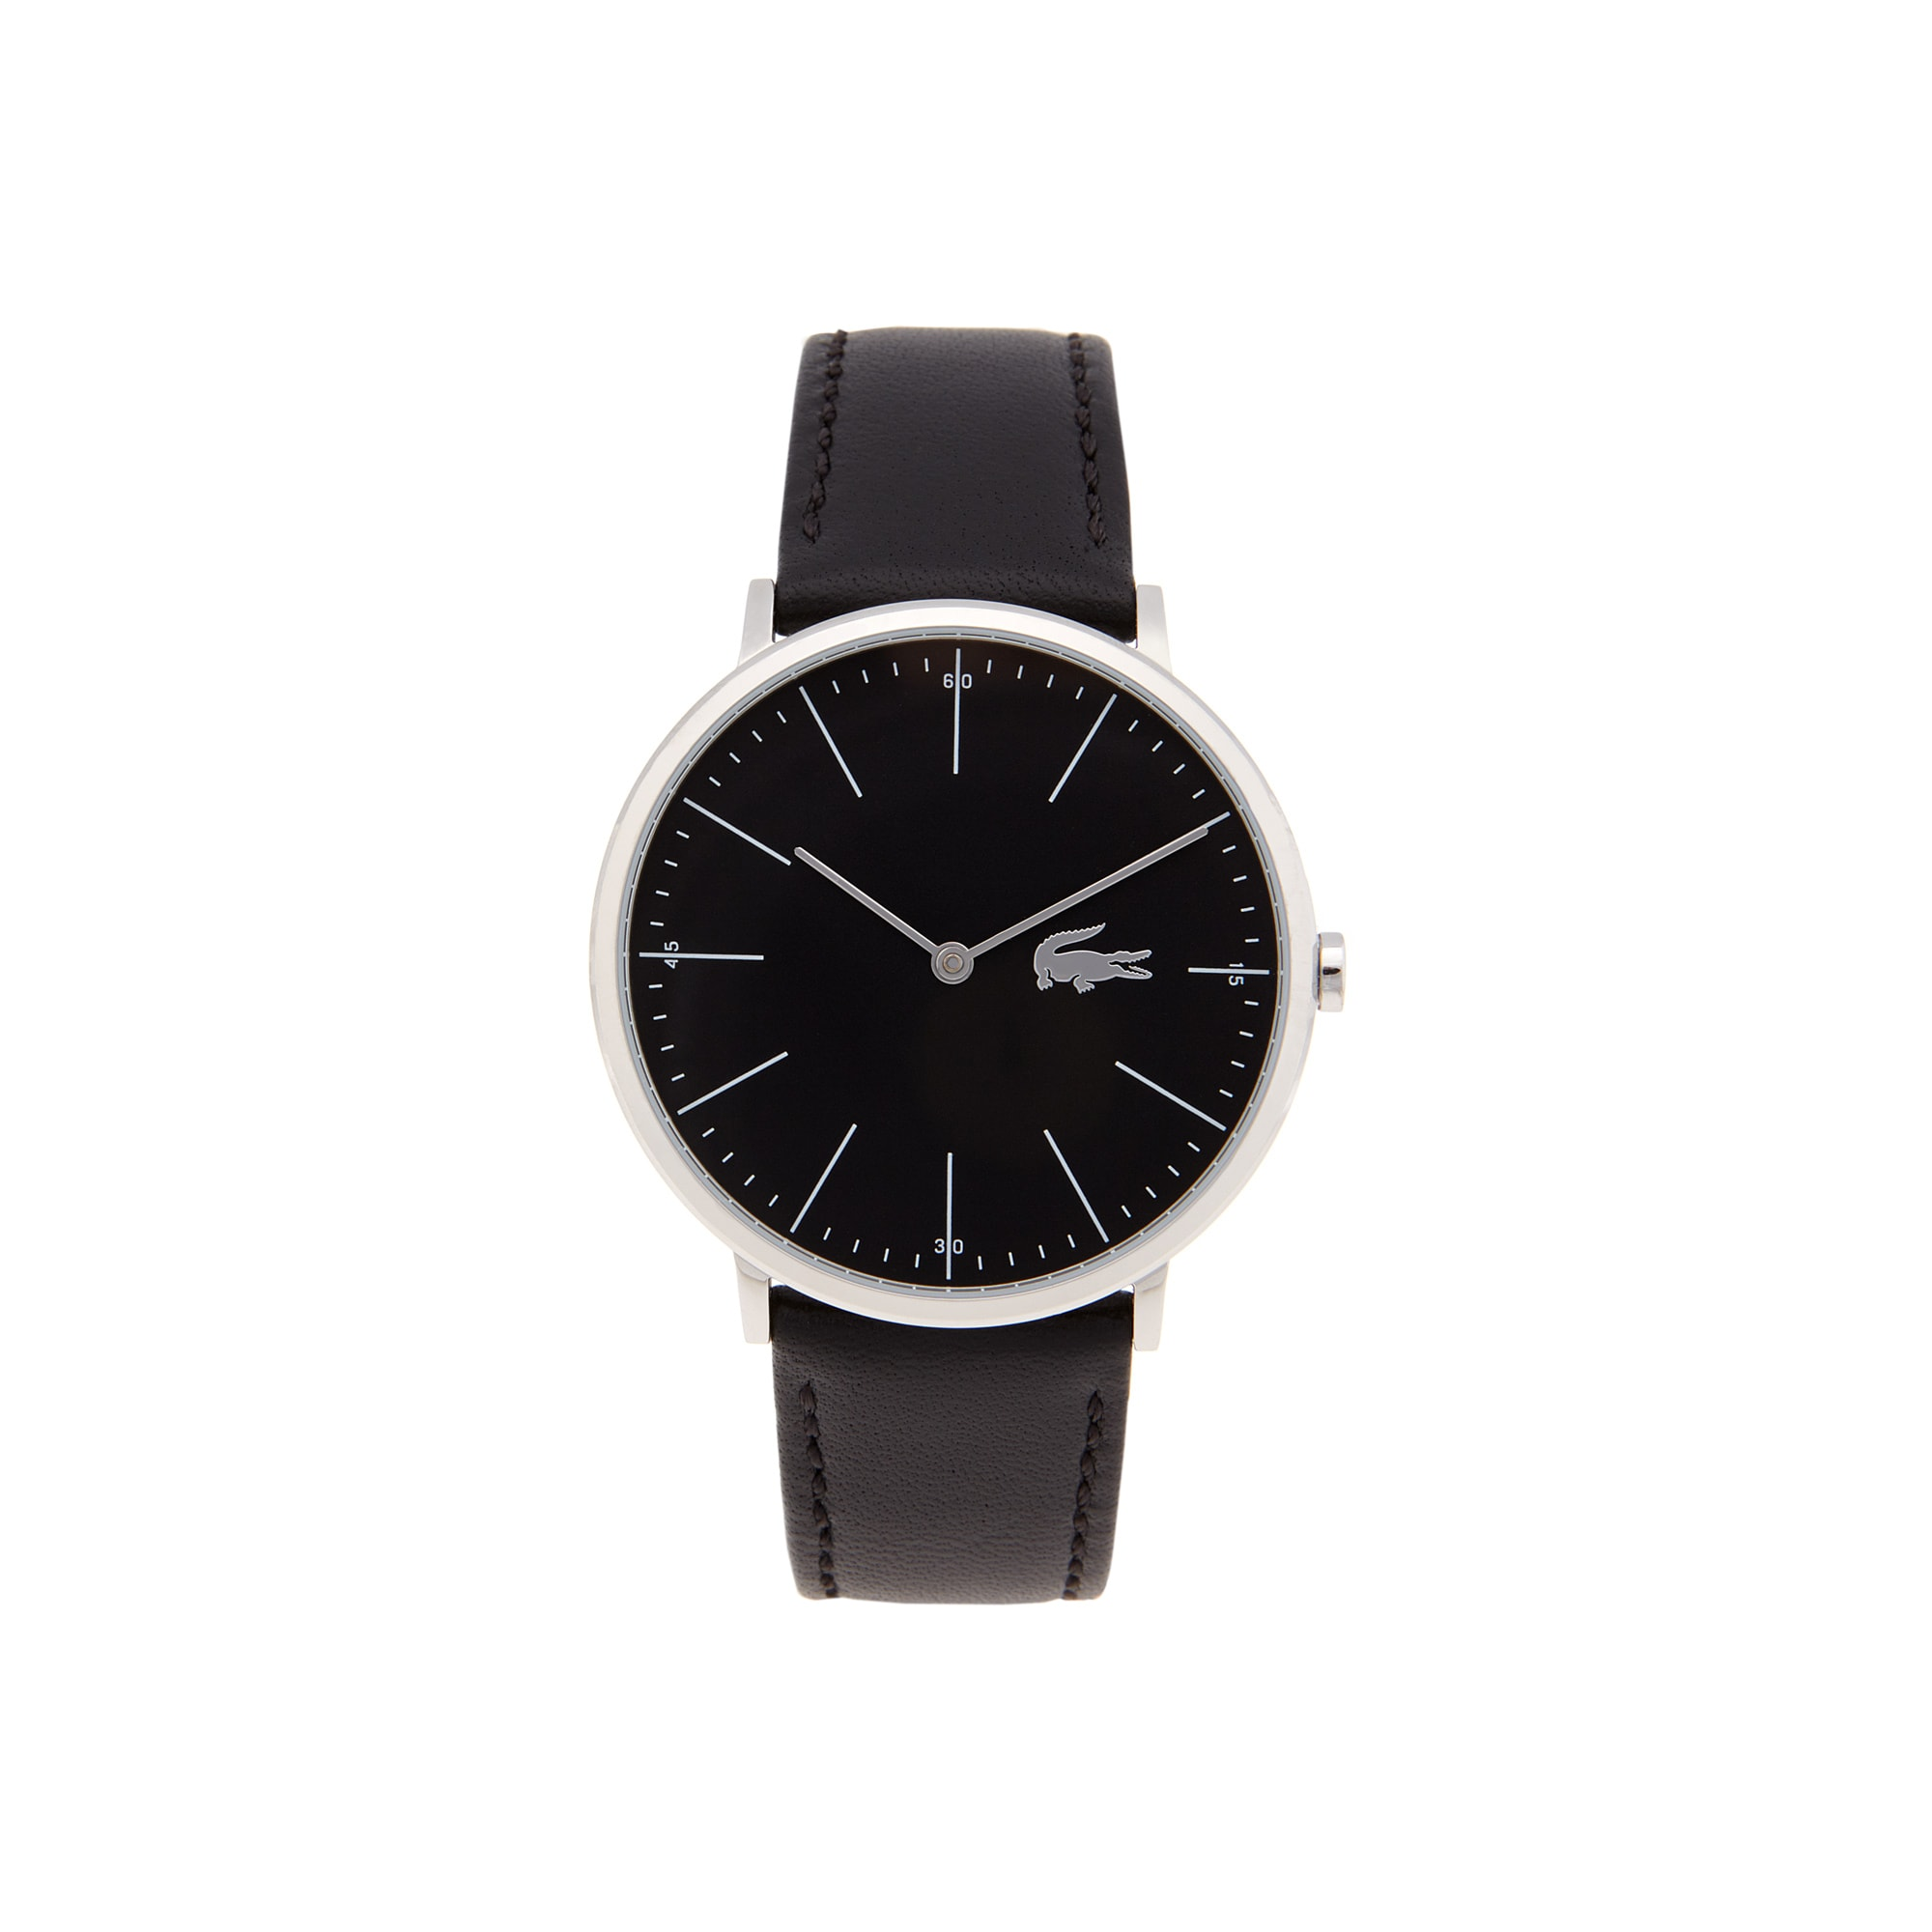 Men's Moon Watch with Black Leather Strap